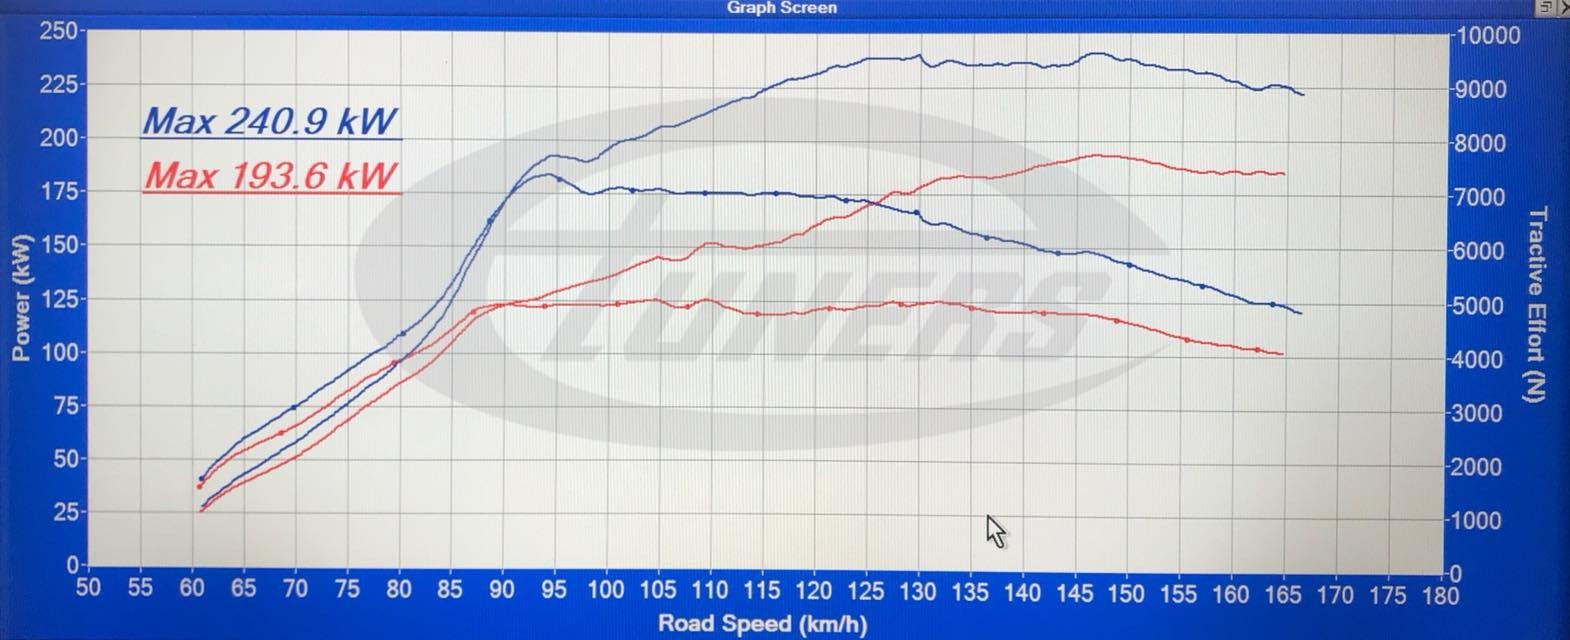 Stock vs tuned Dyno results - Audi RSQ3 2.5TFSI - Etuners Stage2